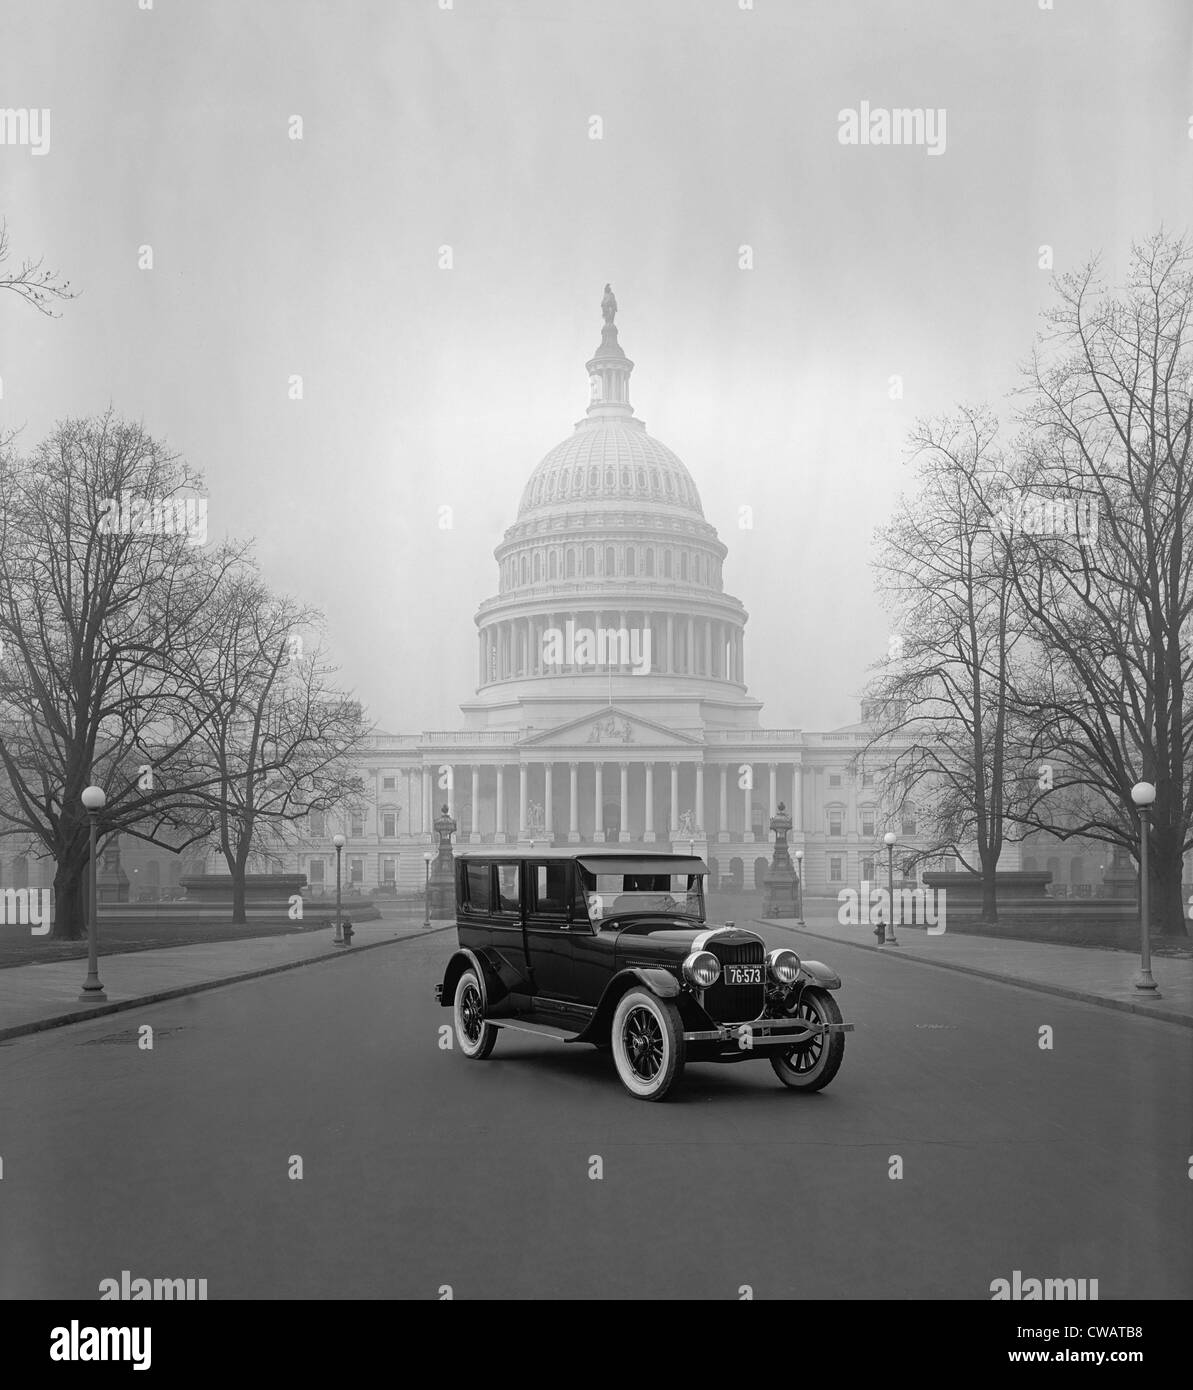 Ford Motor Company-Luxus-Auto, Lincoln, im Capitol in Washington, D.C. Dieses harte Top Coupé hatten Plätze Stockbild